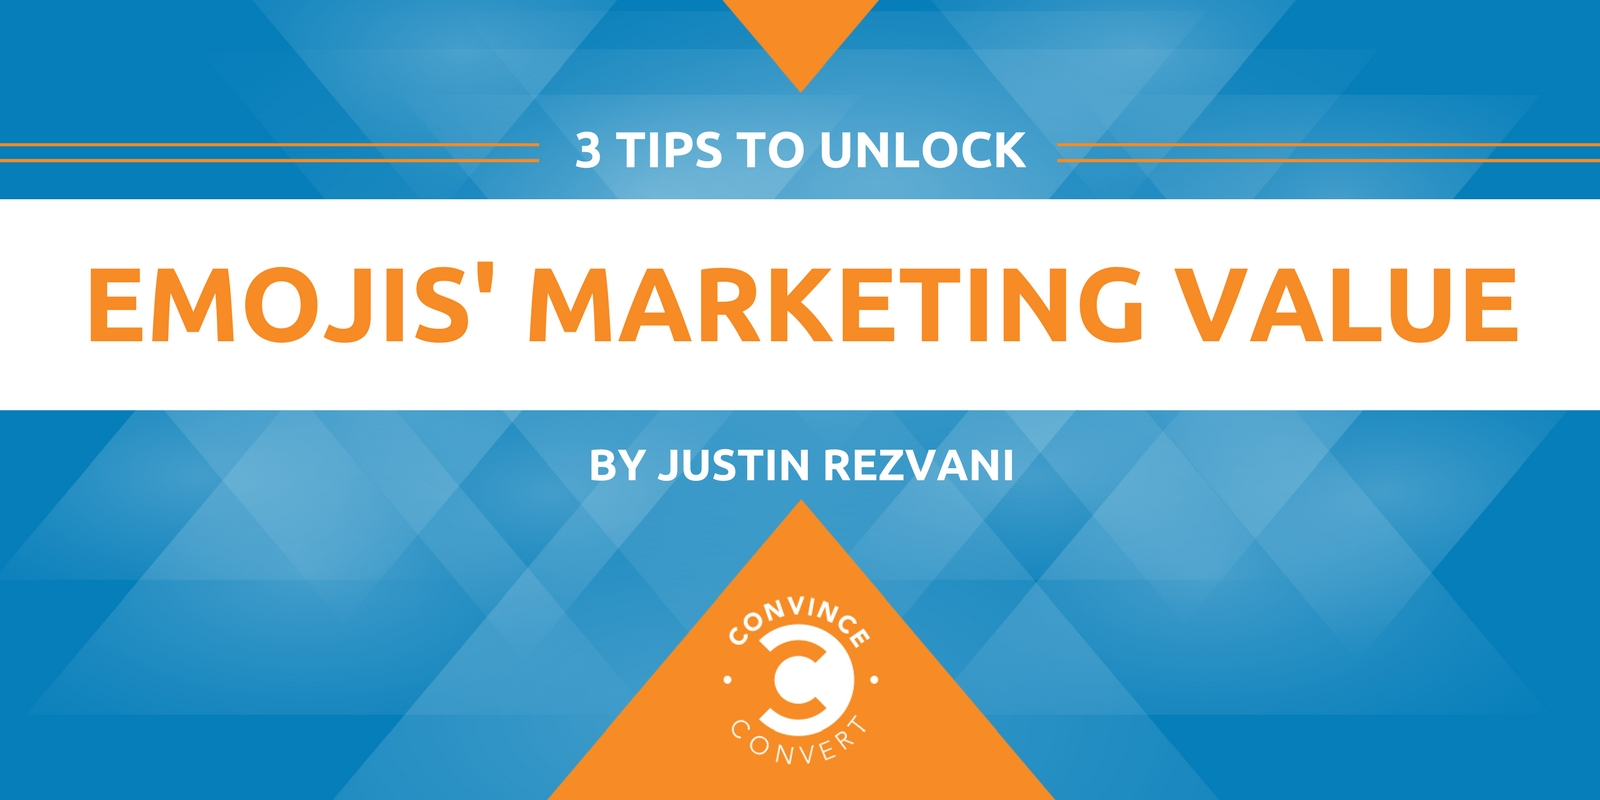 3 Tips to Unlock Emojis' Marketing Value